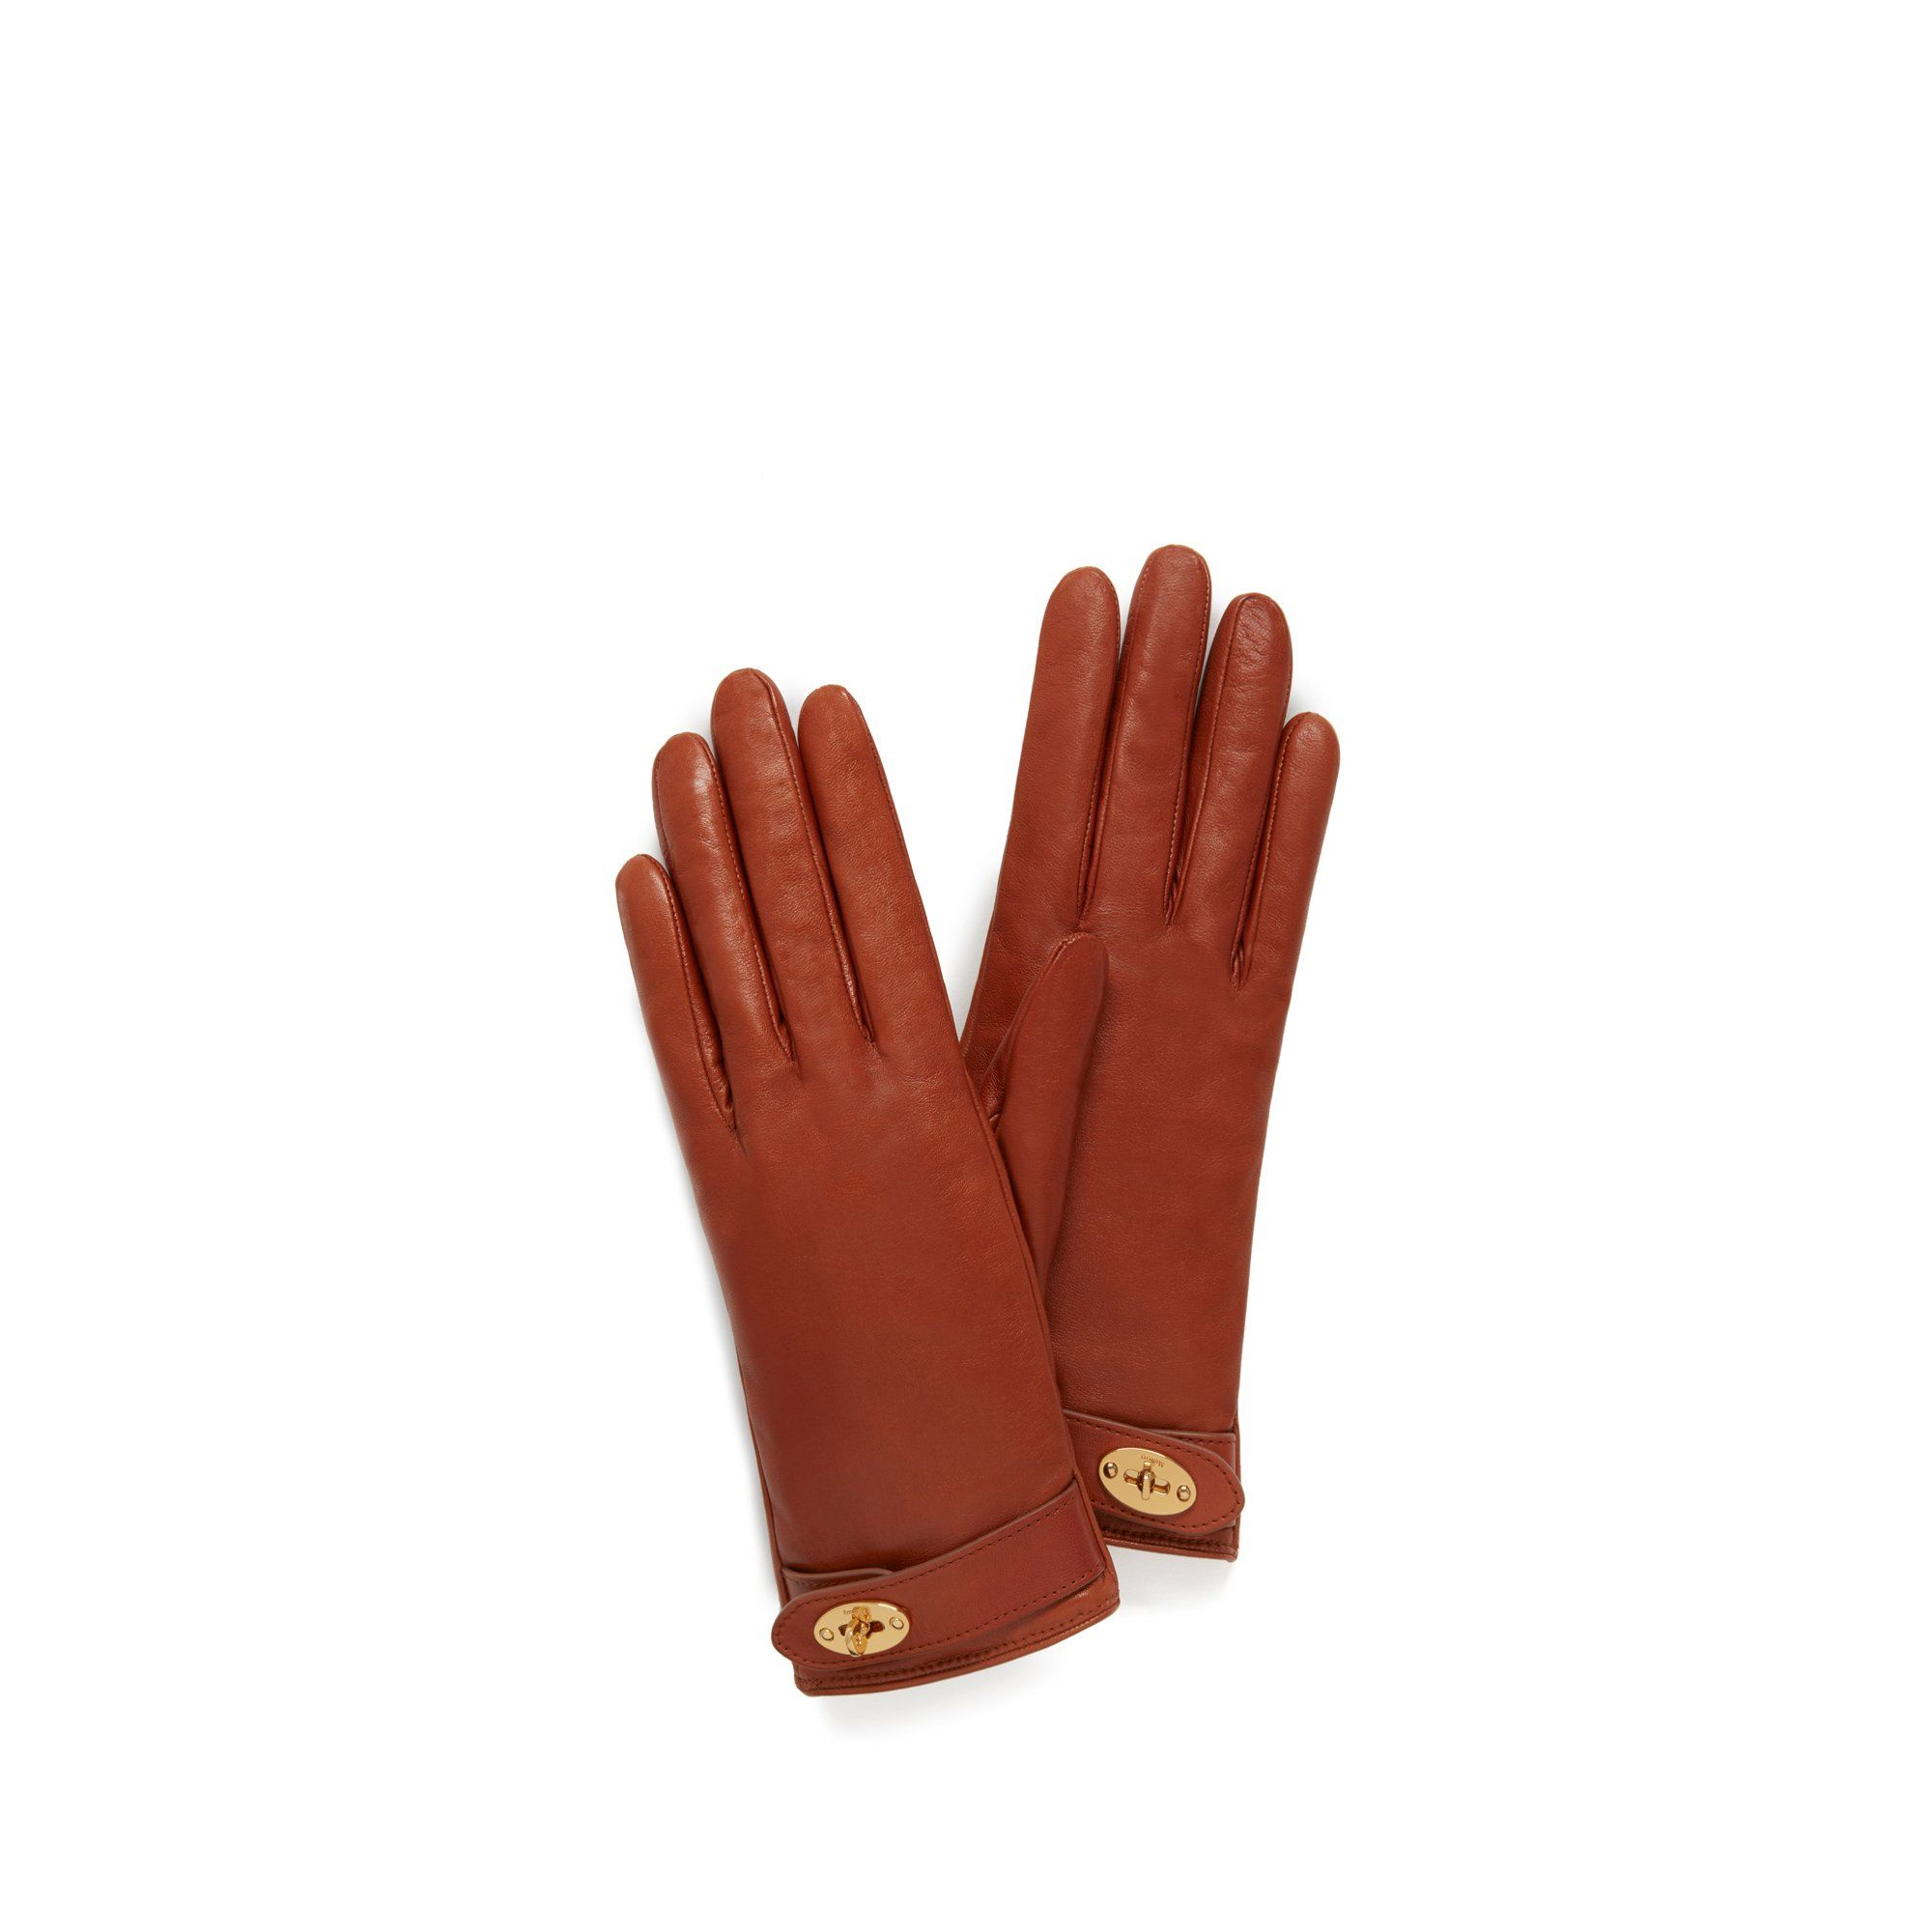 09a52eae741d2 Gloves   Hats